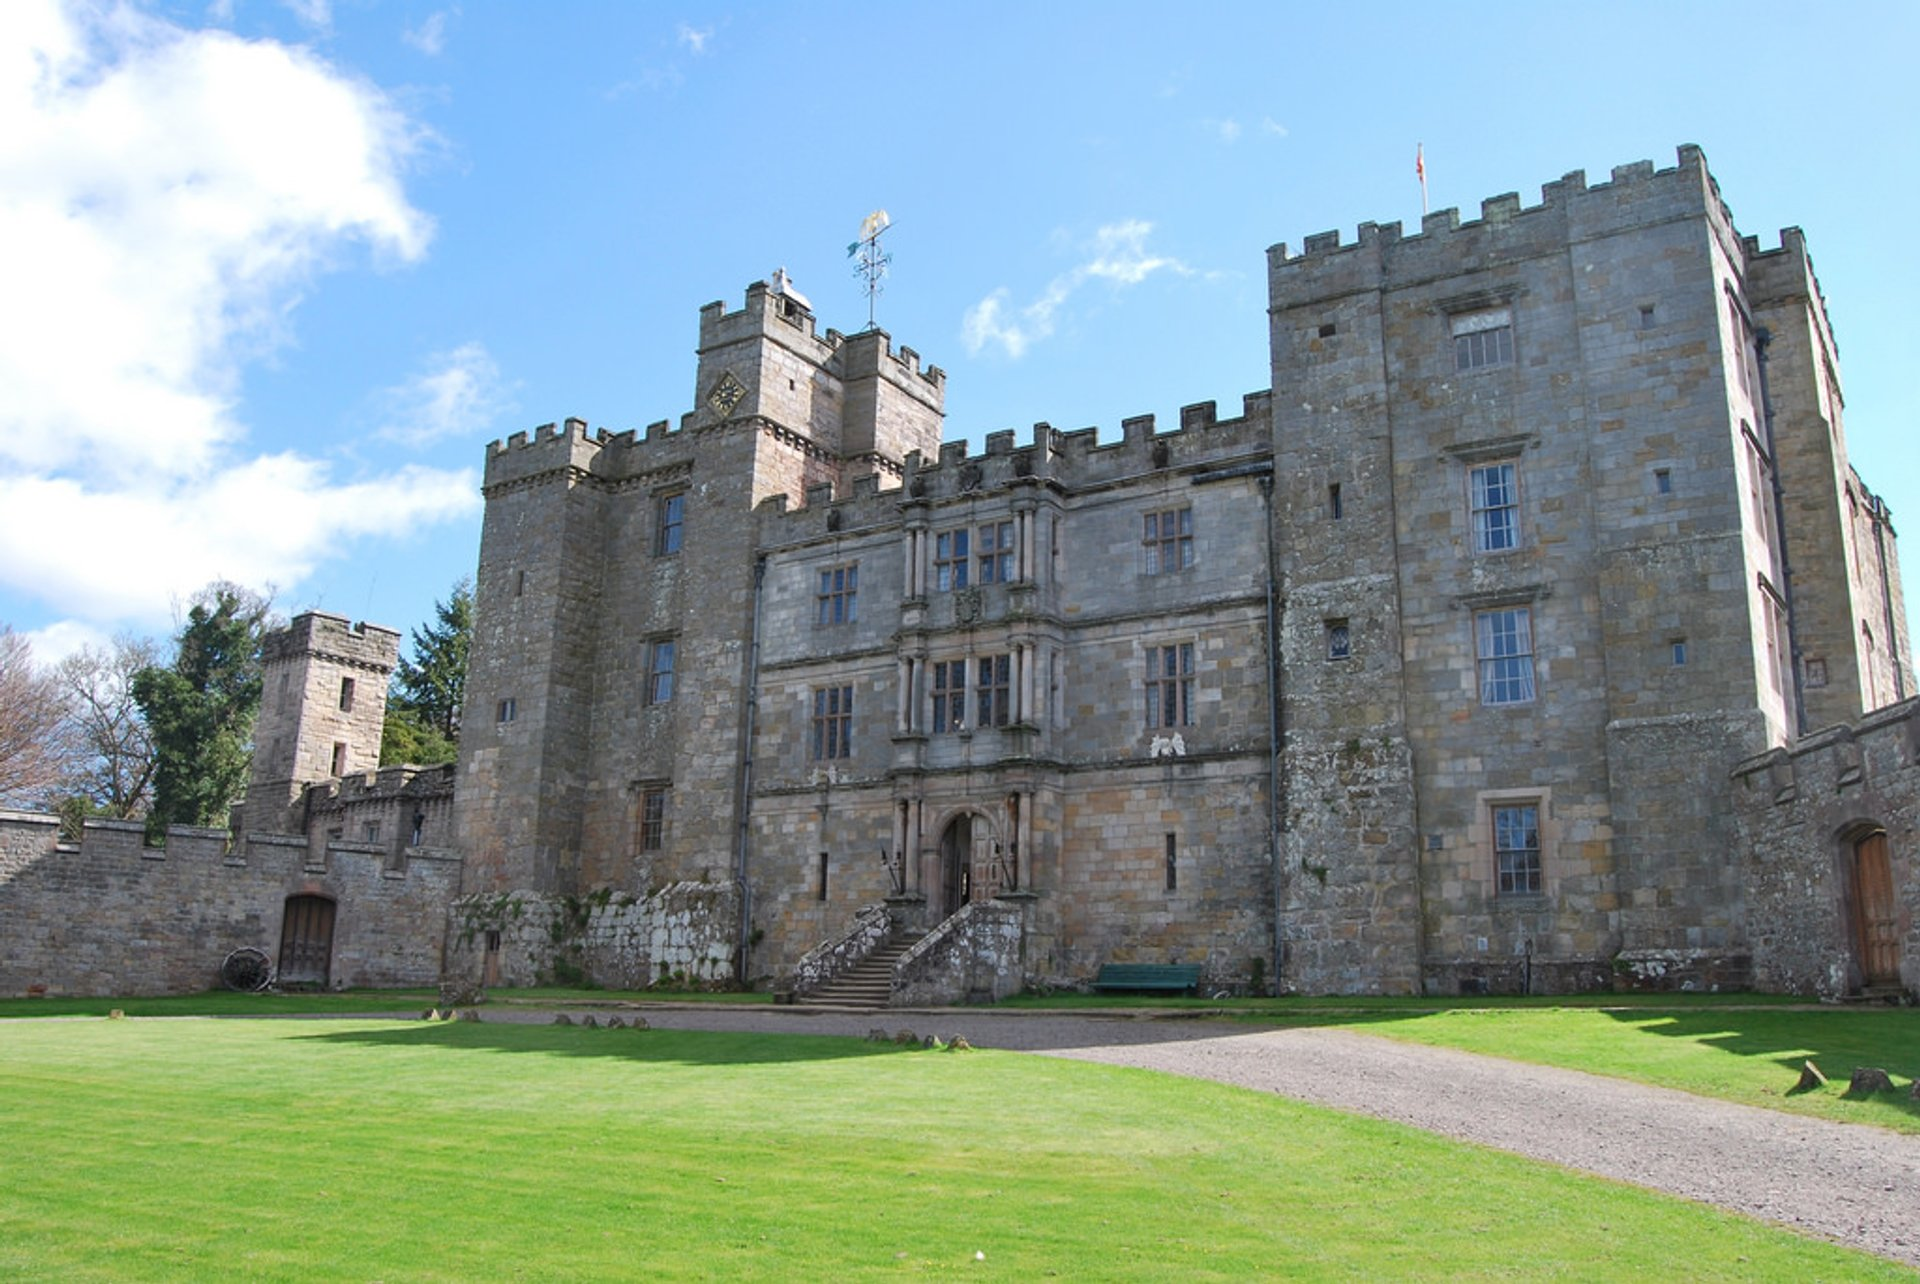 Chillingham Castle in England 2020 - Best Time